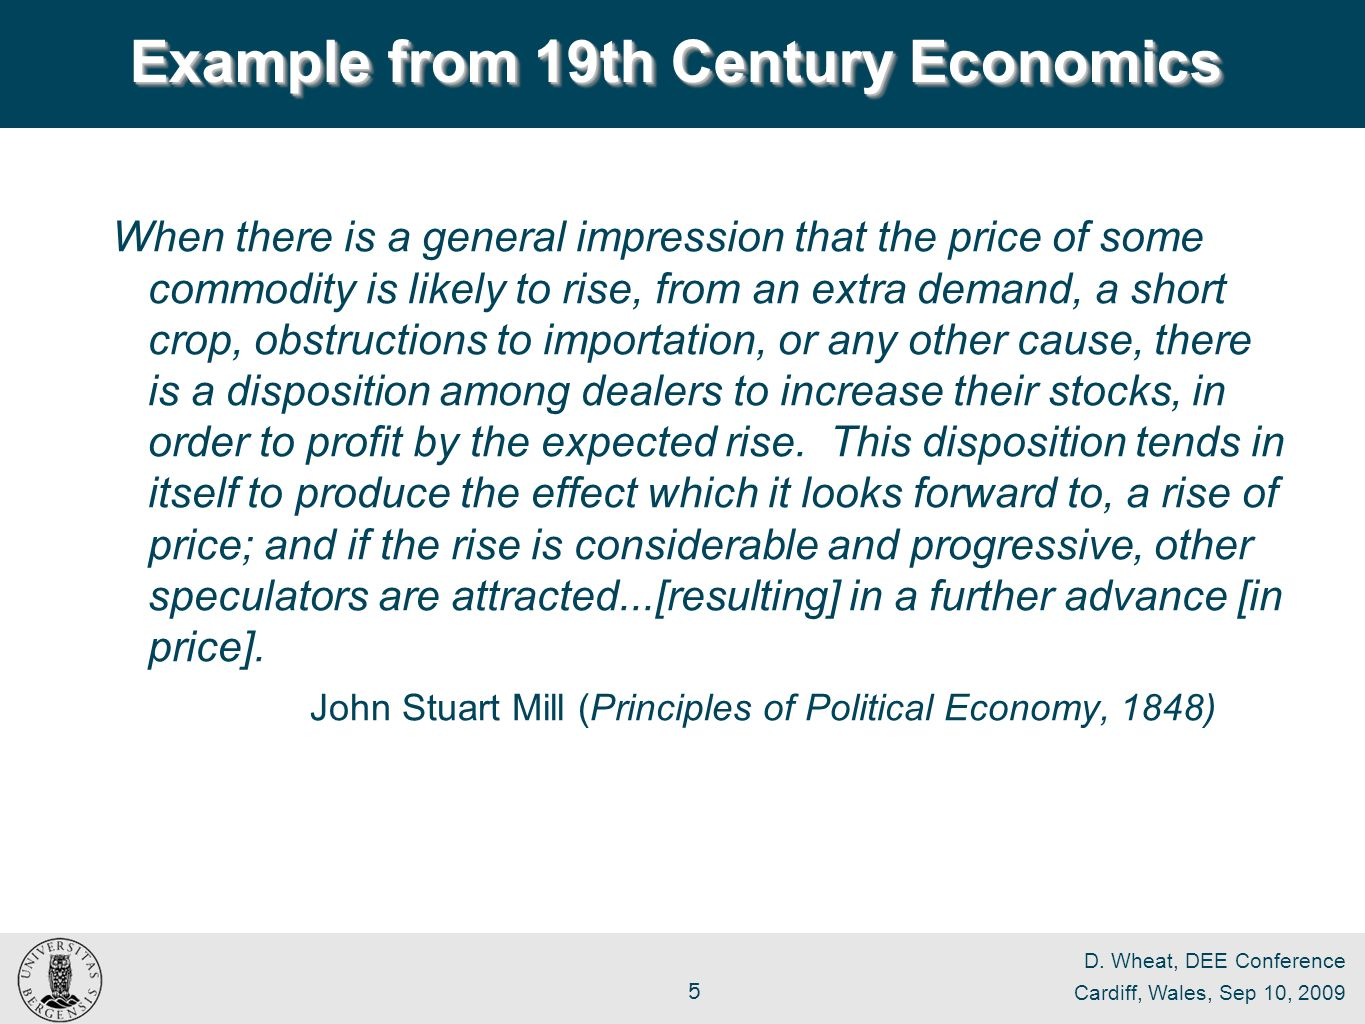 D. Wheat, DEE Conference Cardiff, Wales, Sep 10, 2009 5 When there is a general impression that the price of some commodity is likely to rise, from an